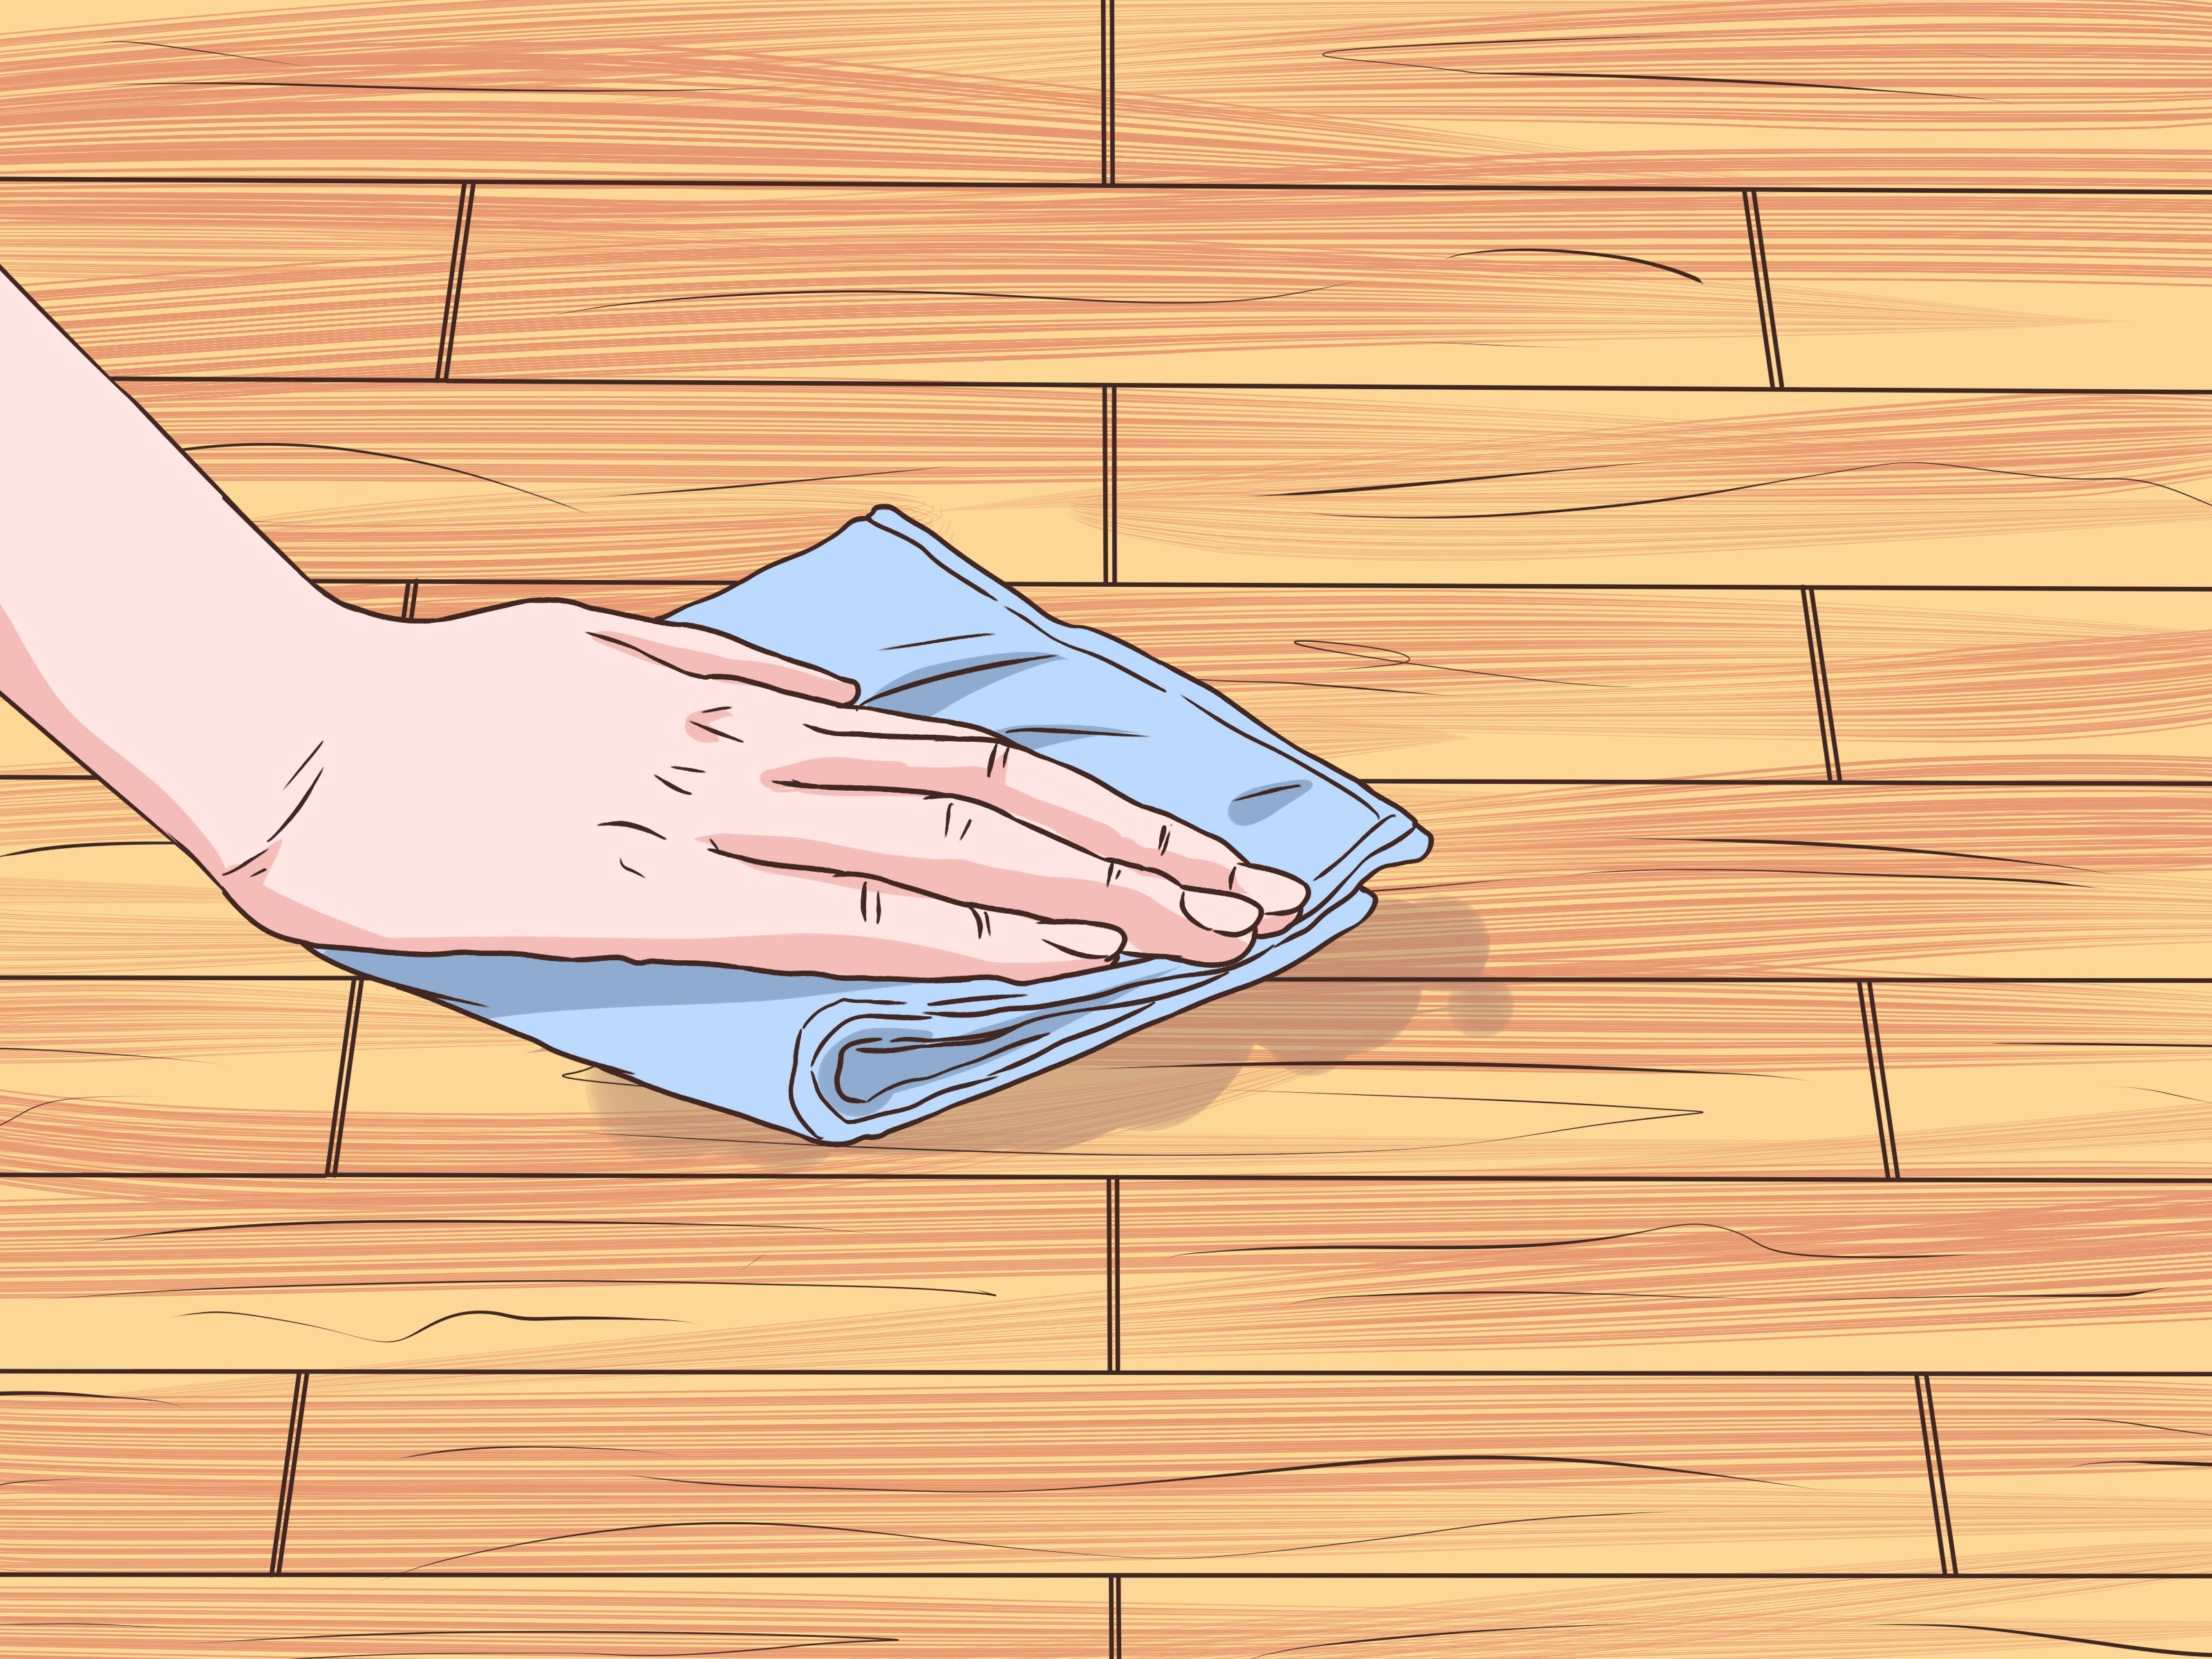 polyurethane drying time hardwood floors of how to clean sticky hardwood floors 9 steps with pictures with regard to clean sticky hardwood floors step 9